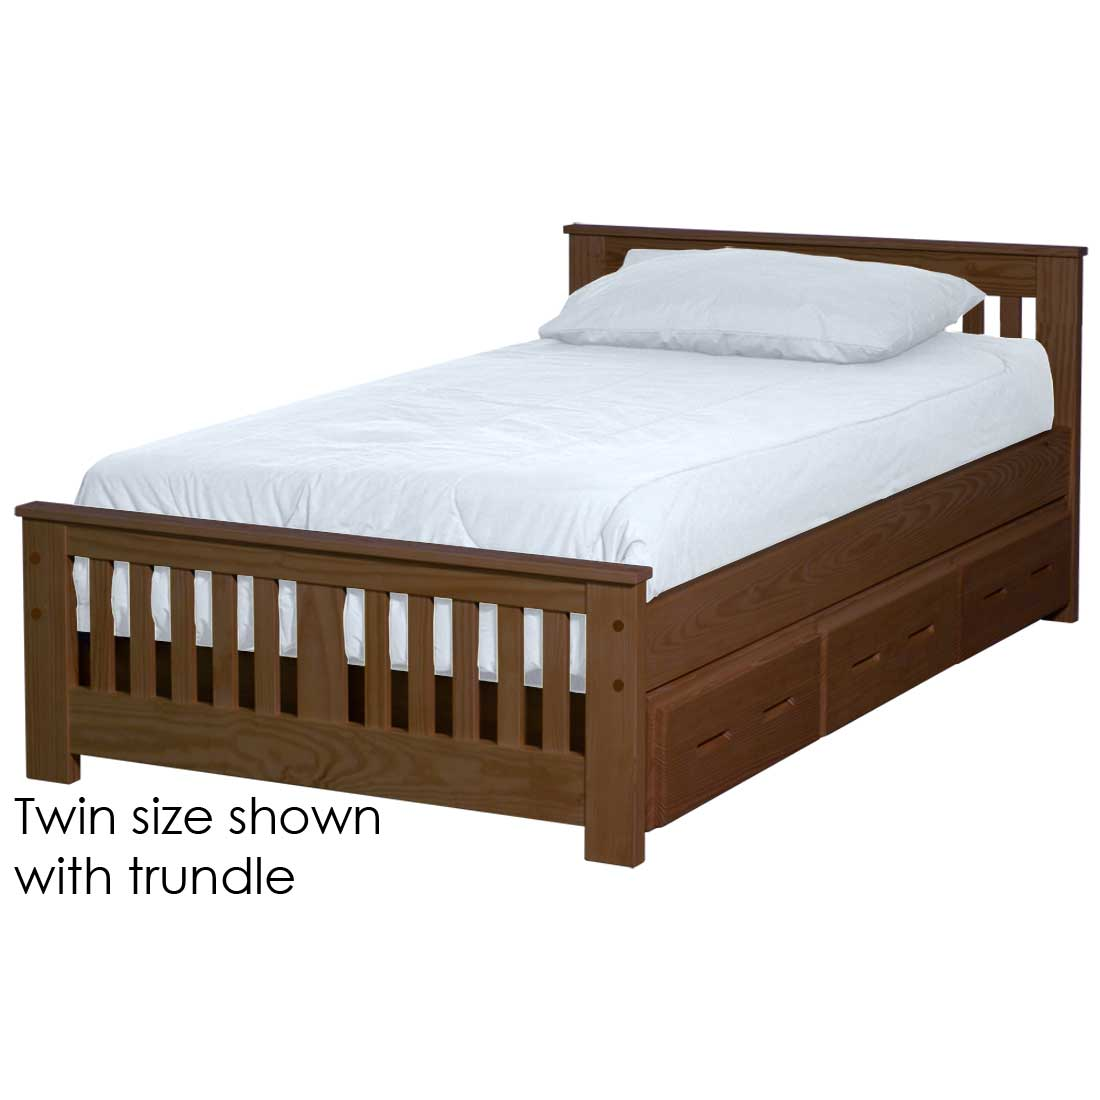 Image of: Shaker Bed 29in Headboard 18in Footboard Twin Size Crate Designs Furniture